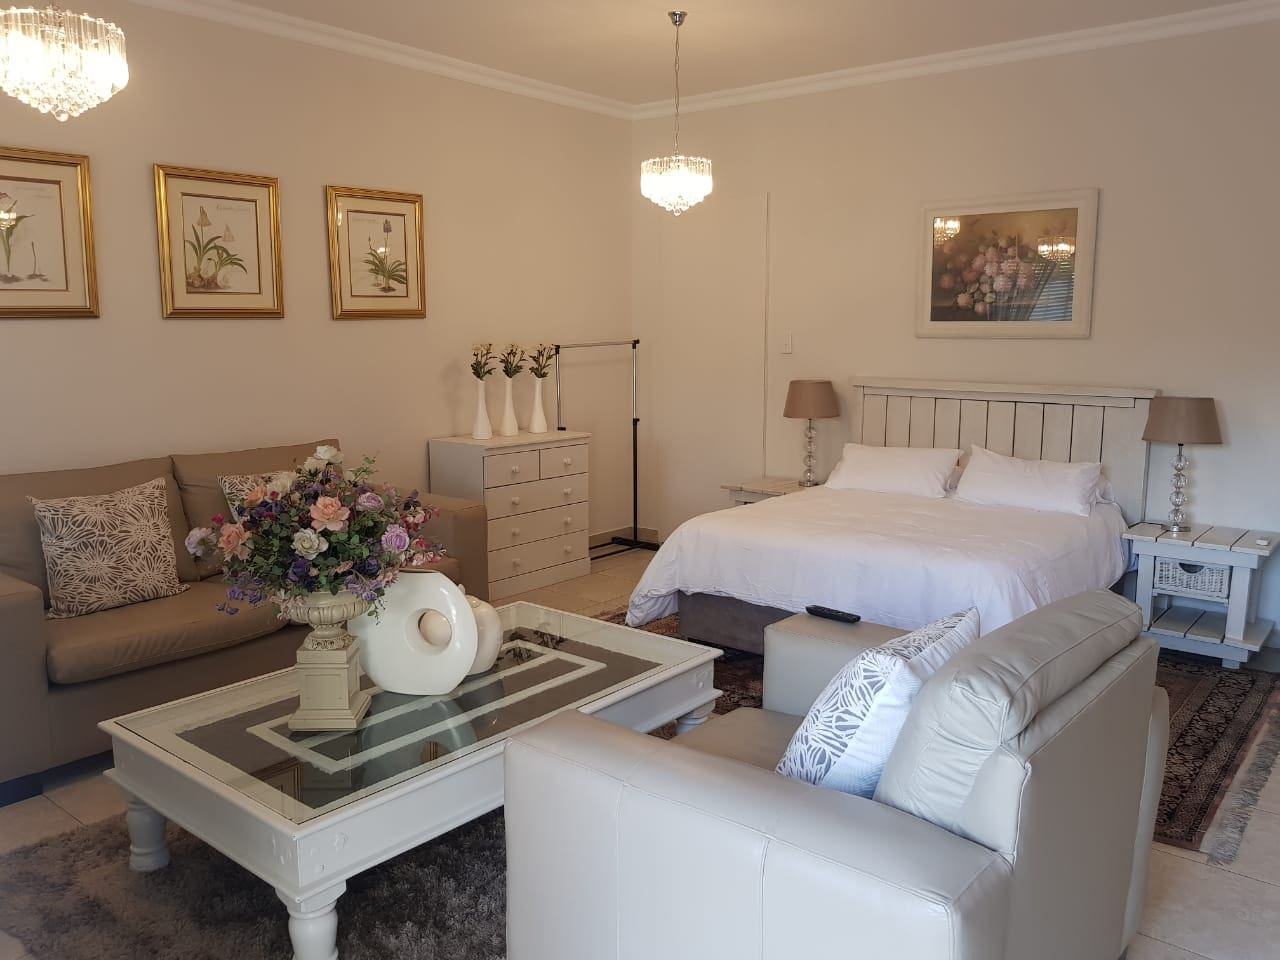 Self Catering - Long term Luxury - Room 5